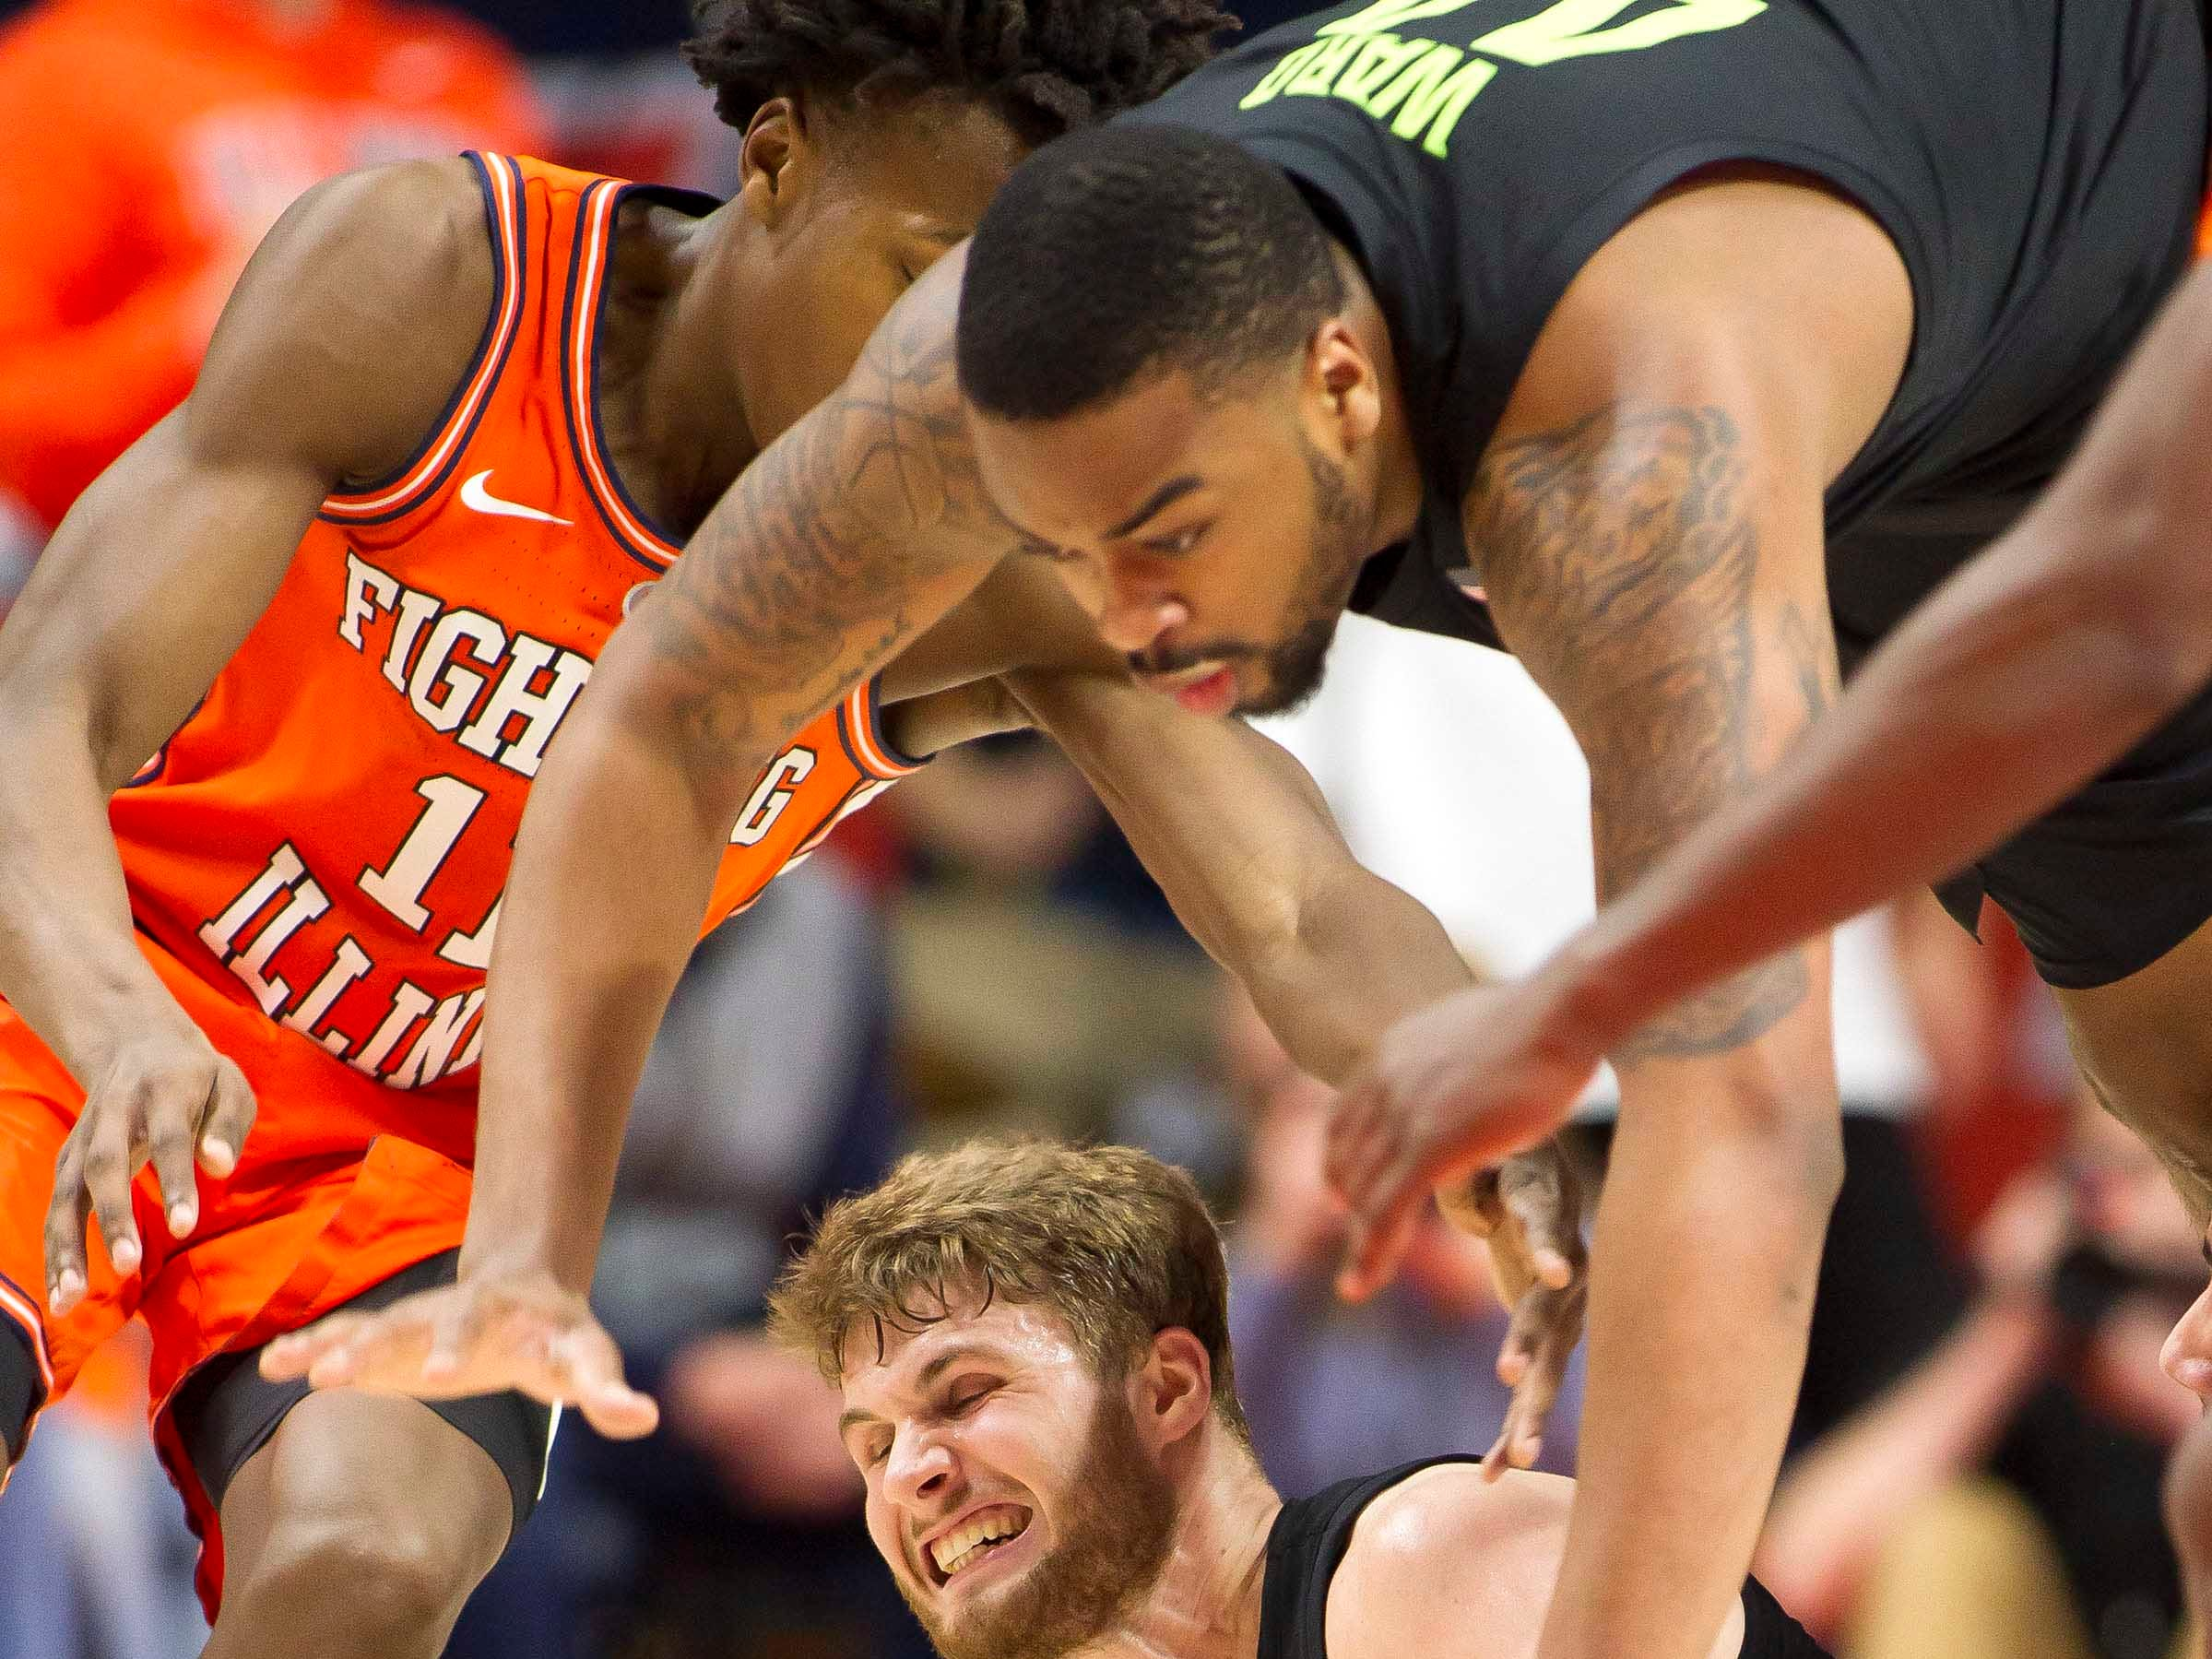 Feb 5, 2019; Champaign, IL, USA; Michigan State Spartans forward Kyle Ahrens (0) grabs a loose ball during the second half against the Illinois Fighting Illini at State Farm Center. Mandatory Credit: Mike Granse-USA TODAY Sports